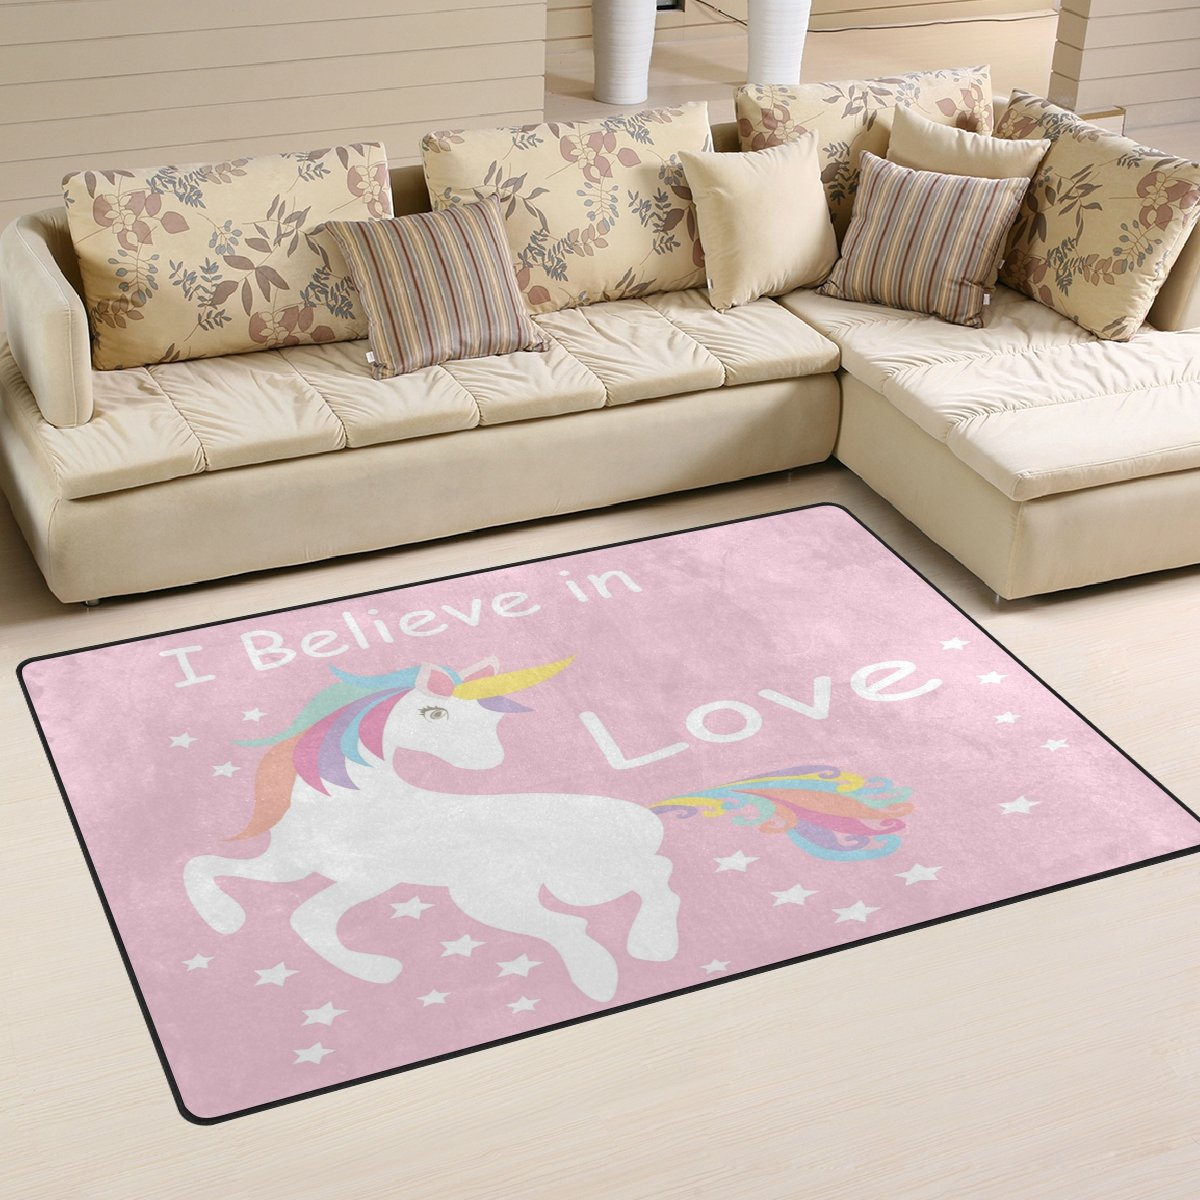 WOZO I Believe in Love Cute Unicorn Pink Area Rug Rugs Non-Slip Floor Mat Doormats Living Room Bedroom 31 x 20 inches g2987596p146c161s240